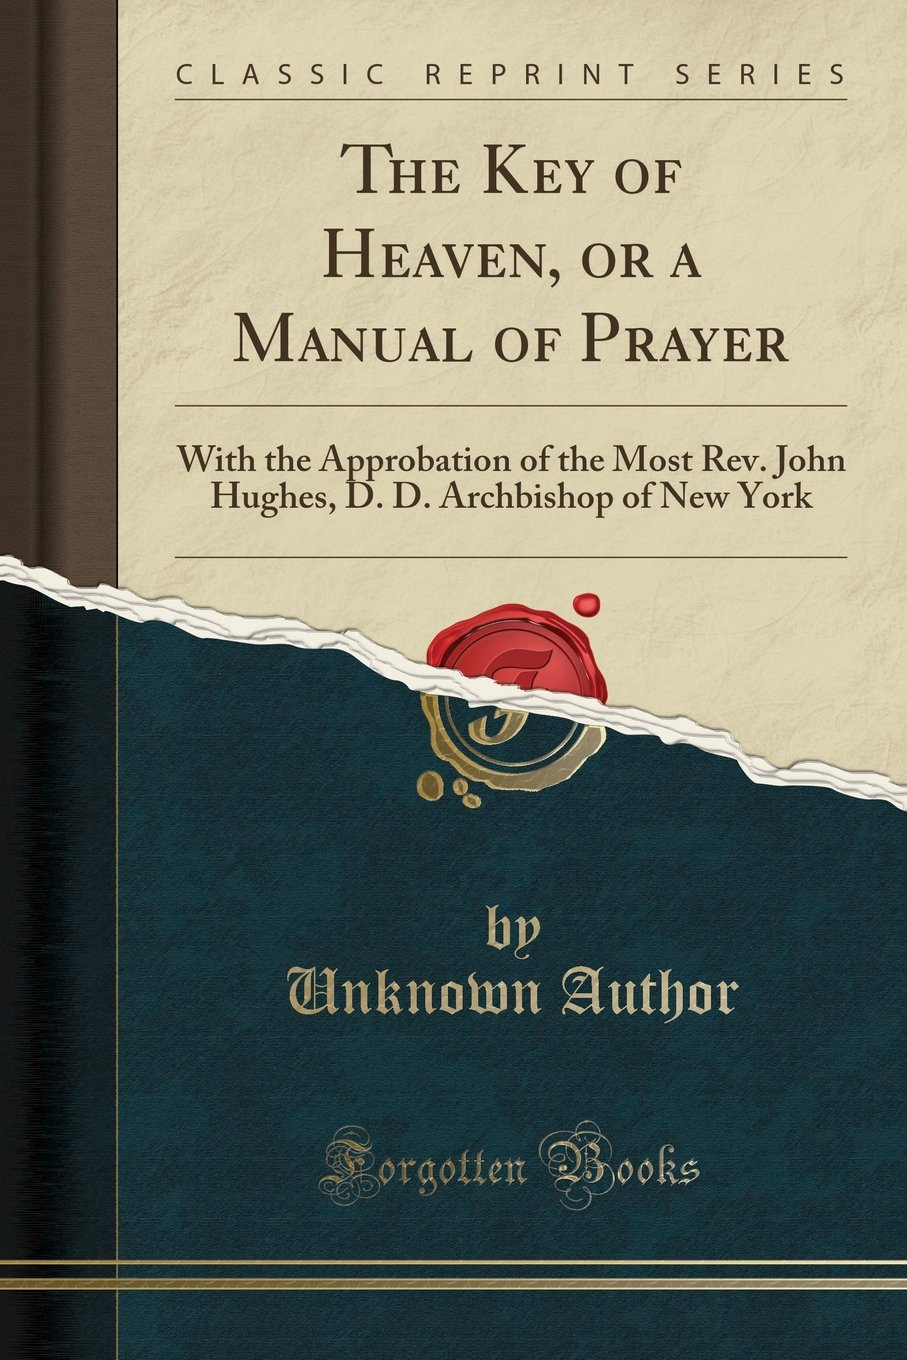 The Key of Heaven, or a Manual of Prayer: With the